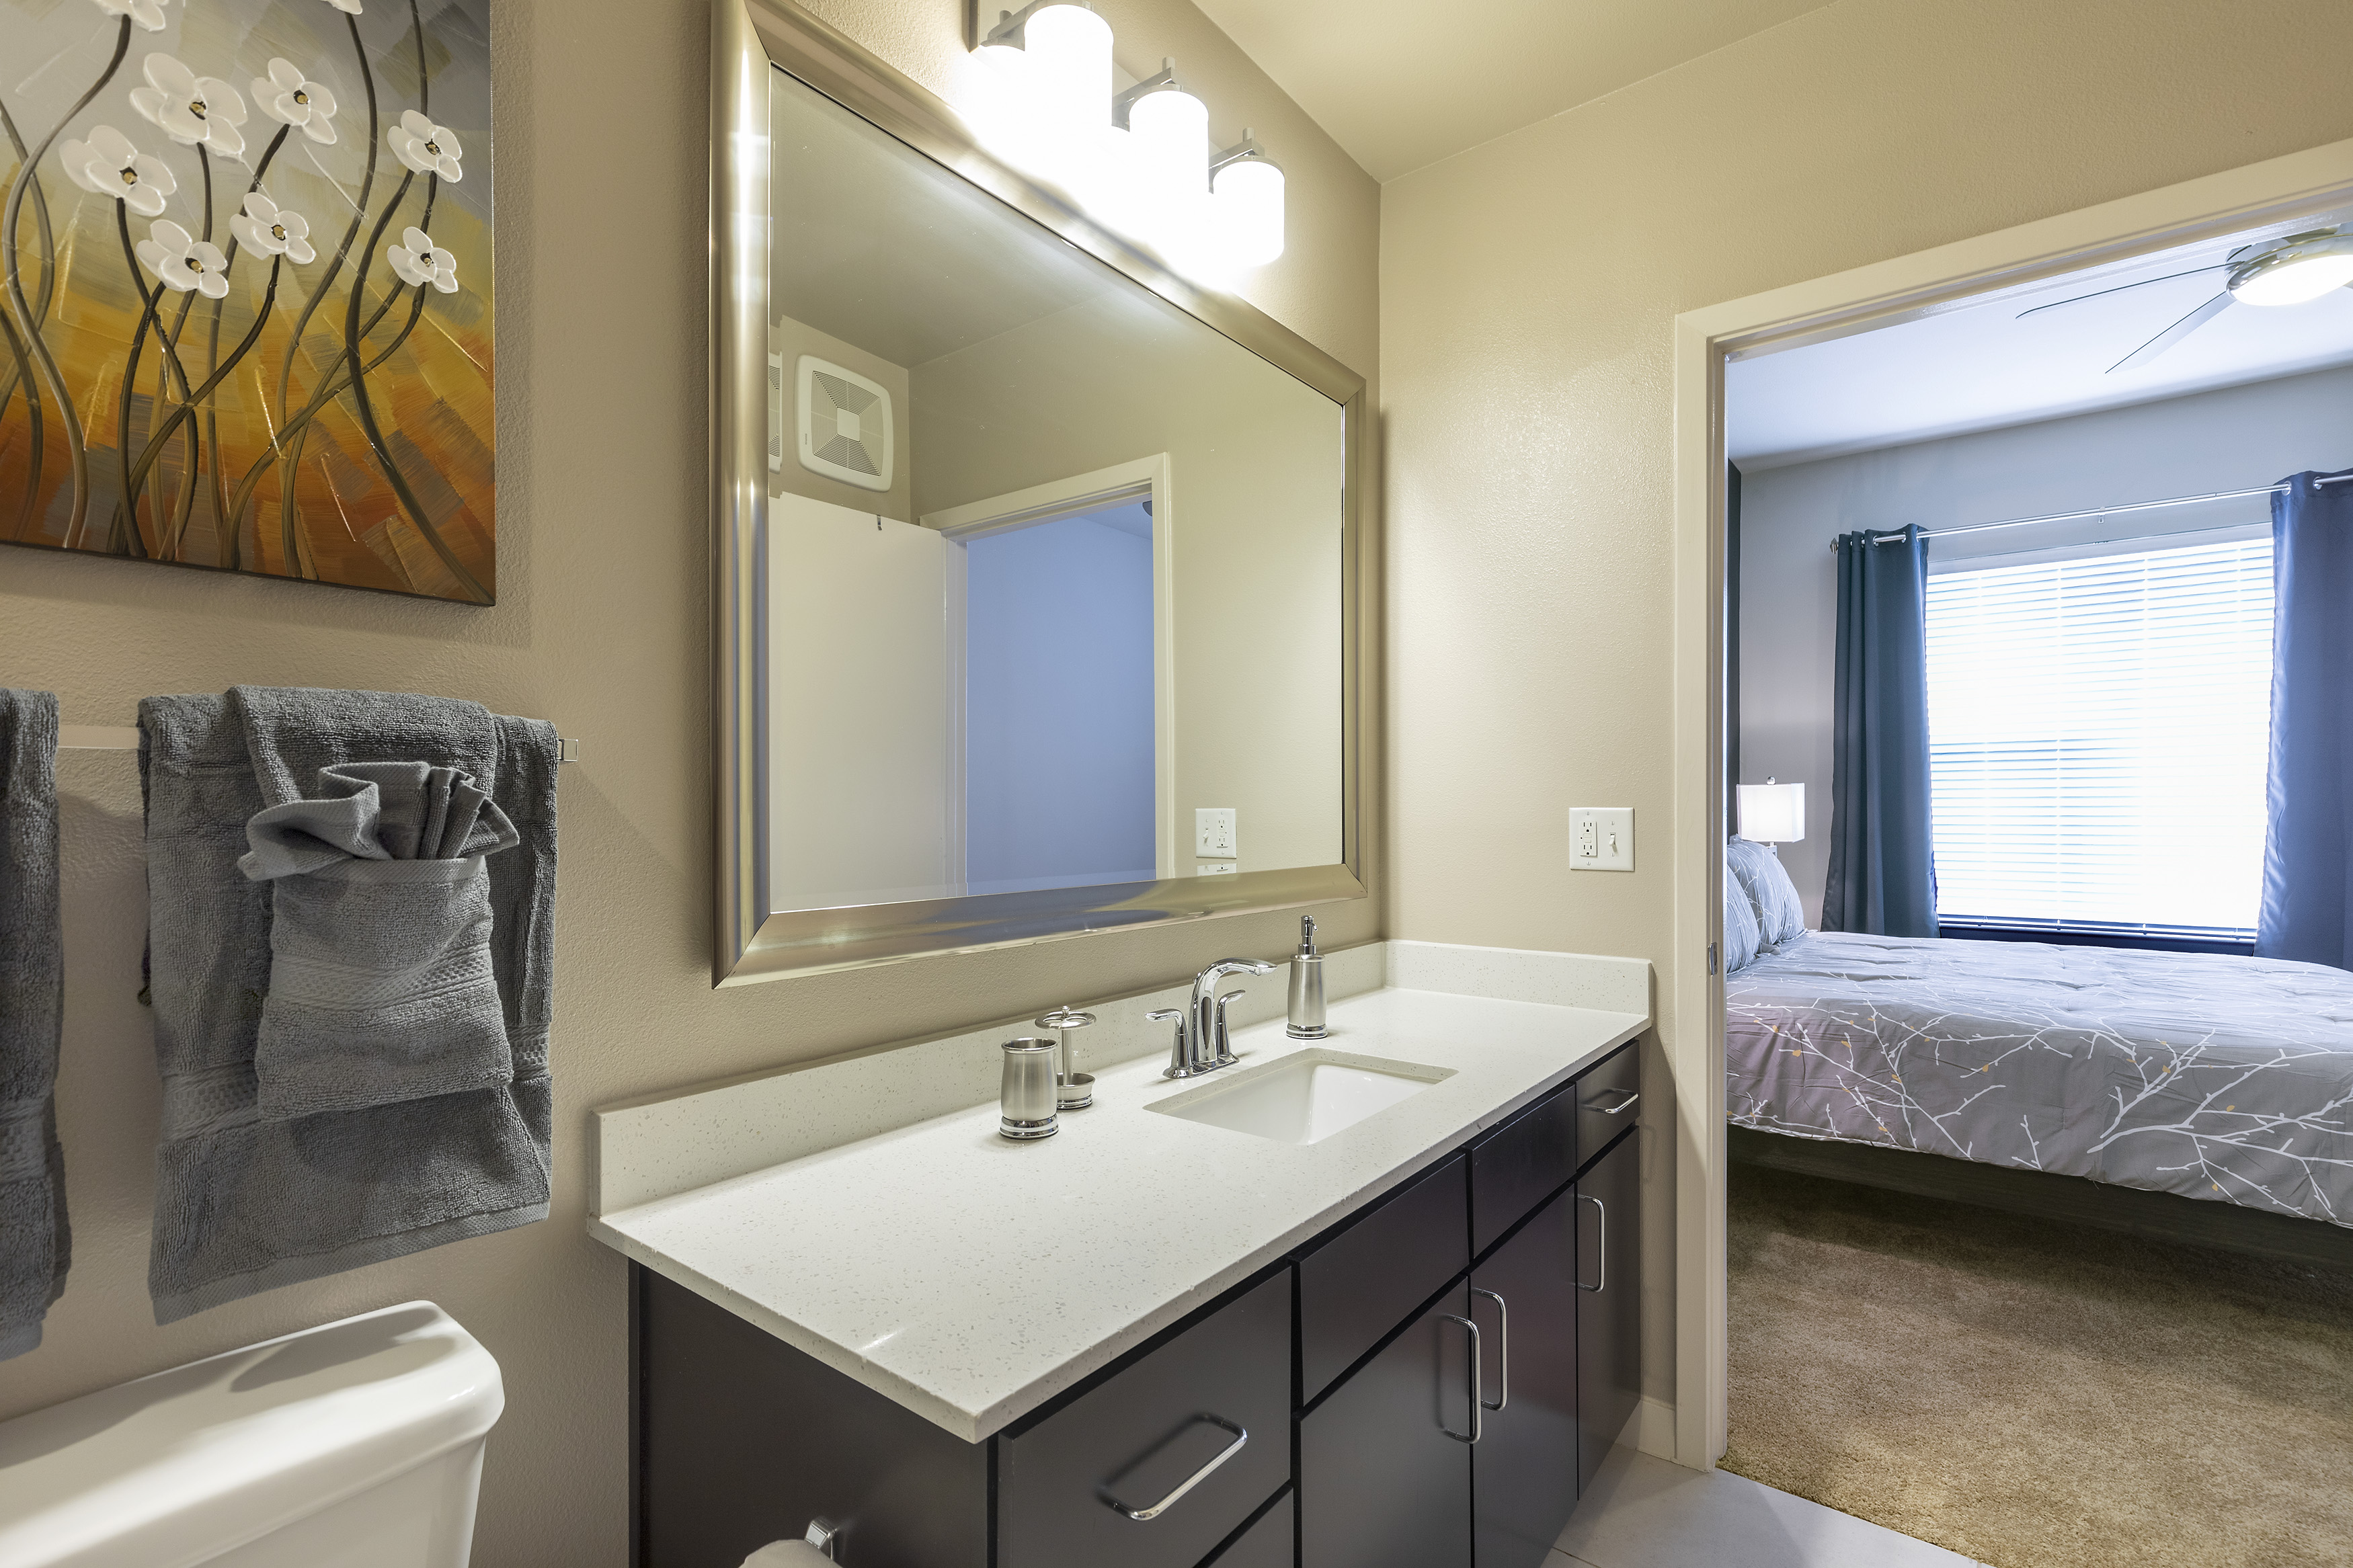 Apartment LUXURIOUS - KING SIZED BED - MED CENTER FULLY EQUIPPED CONDO photo 21441062